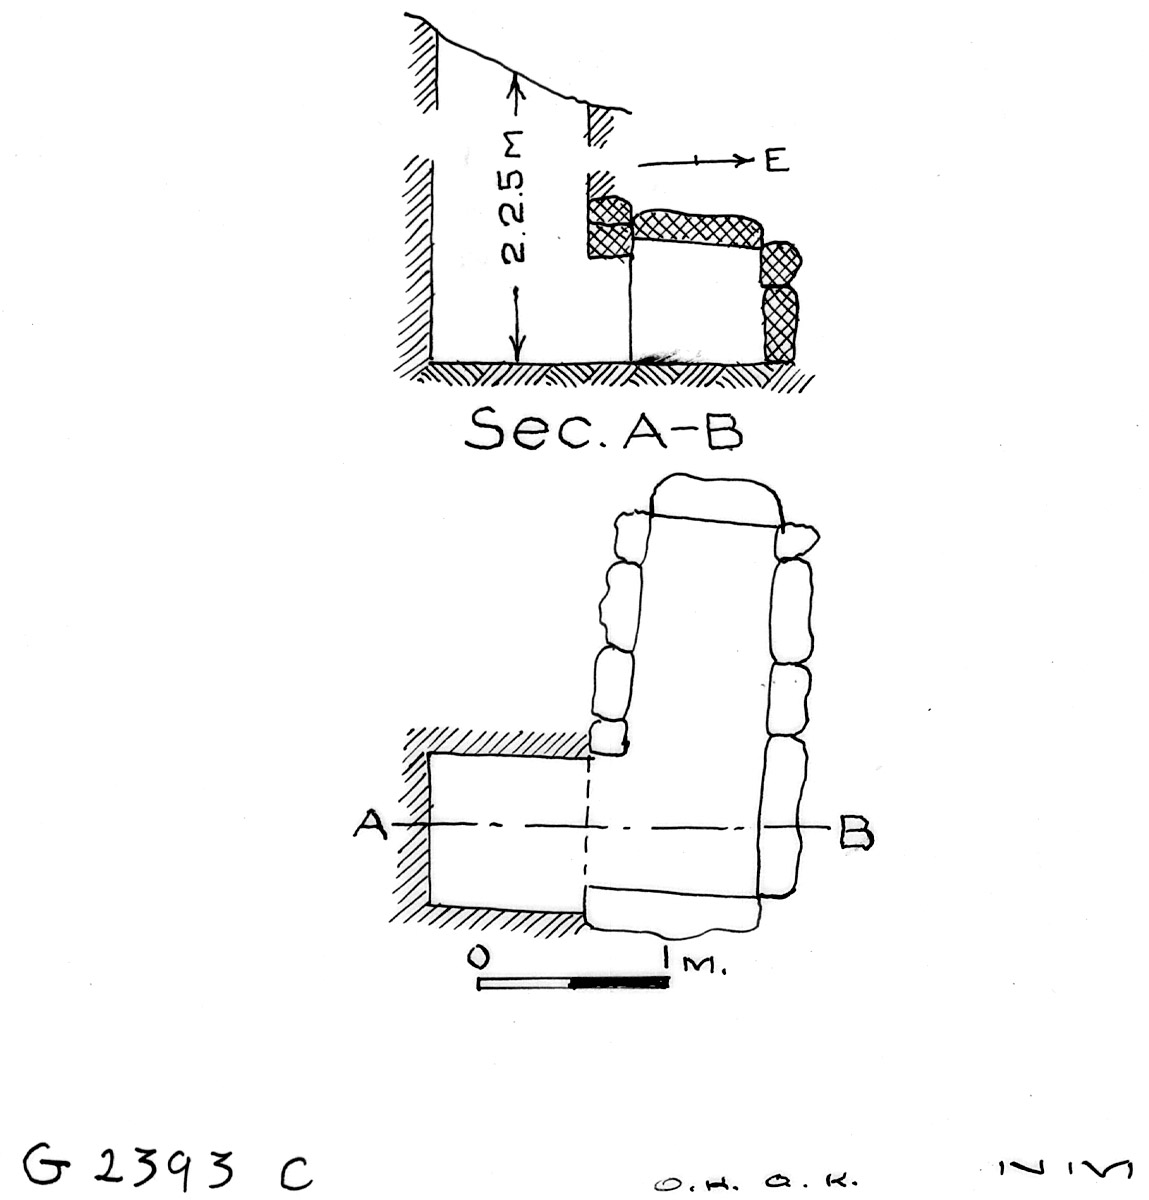 Maps and plans: G 2393, Shaft C